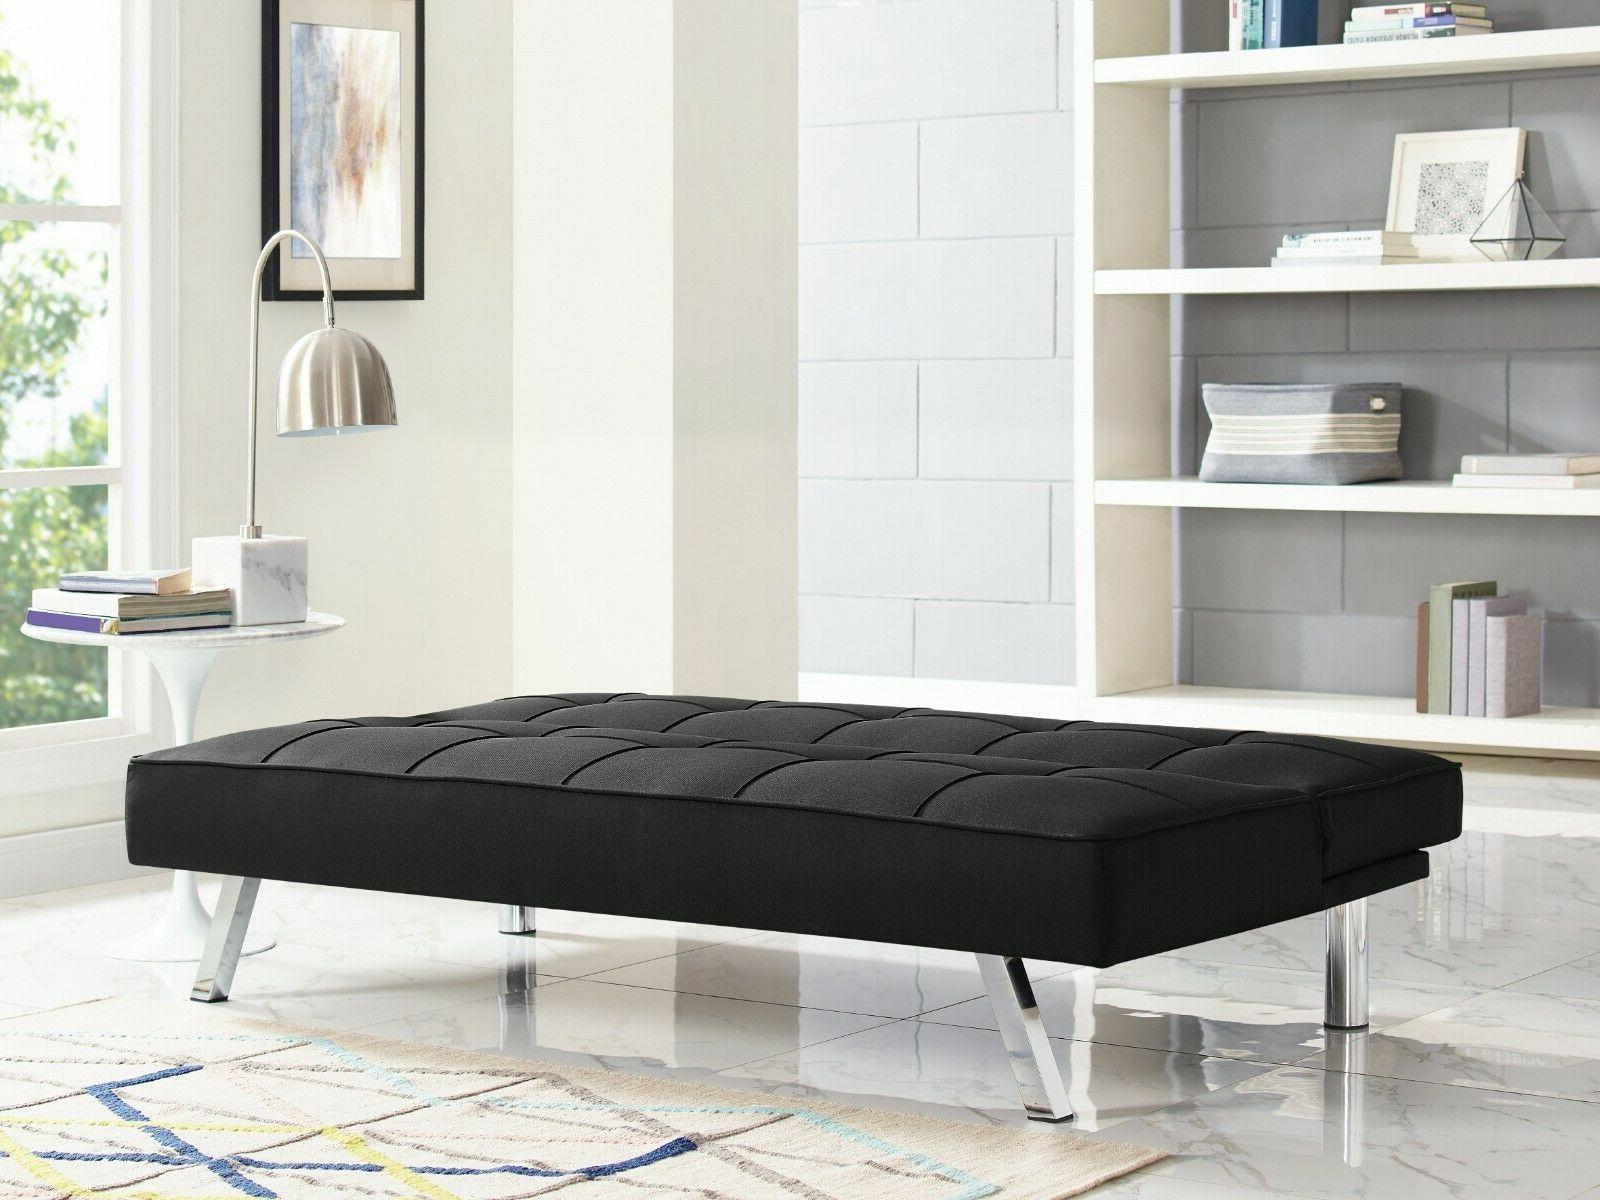 Futon Sofa Bed Lounger Couch Convertible Mattress Single Sle